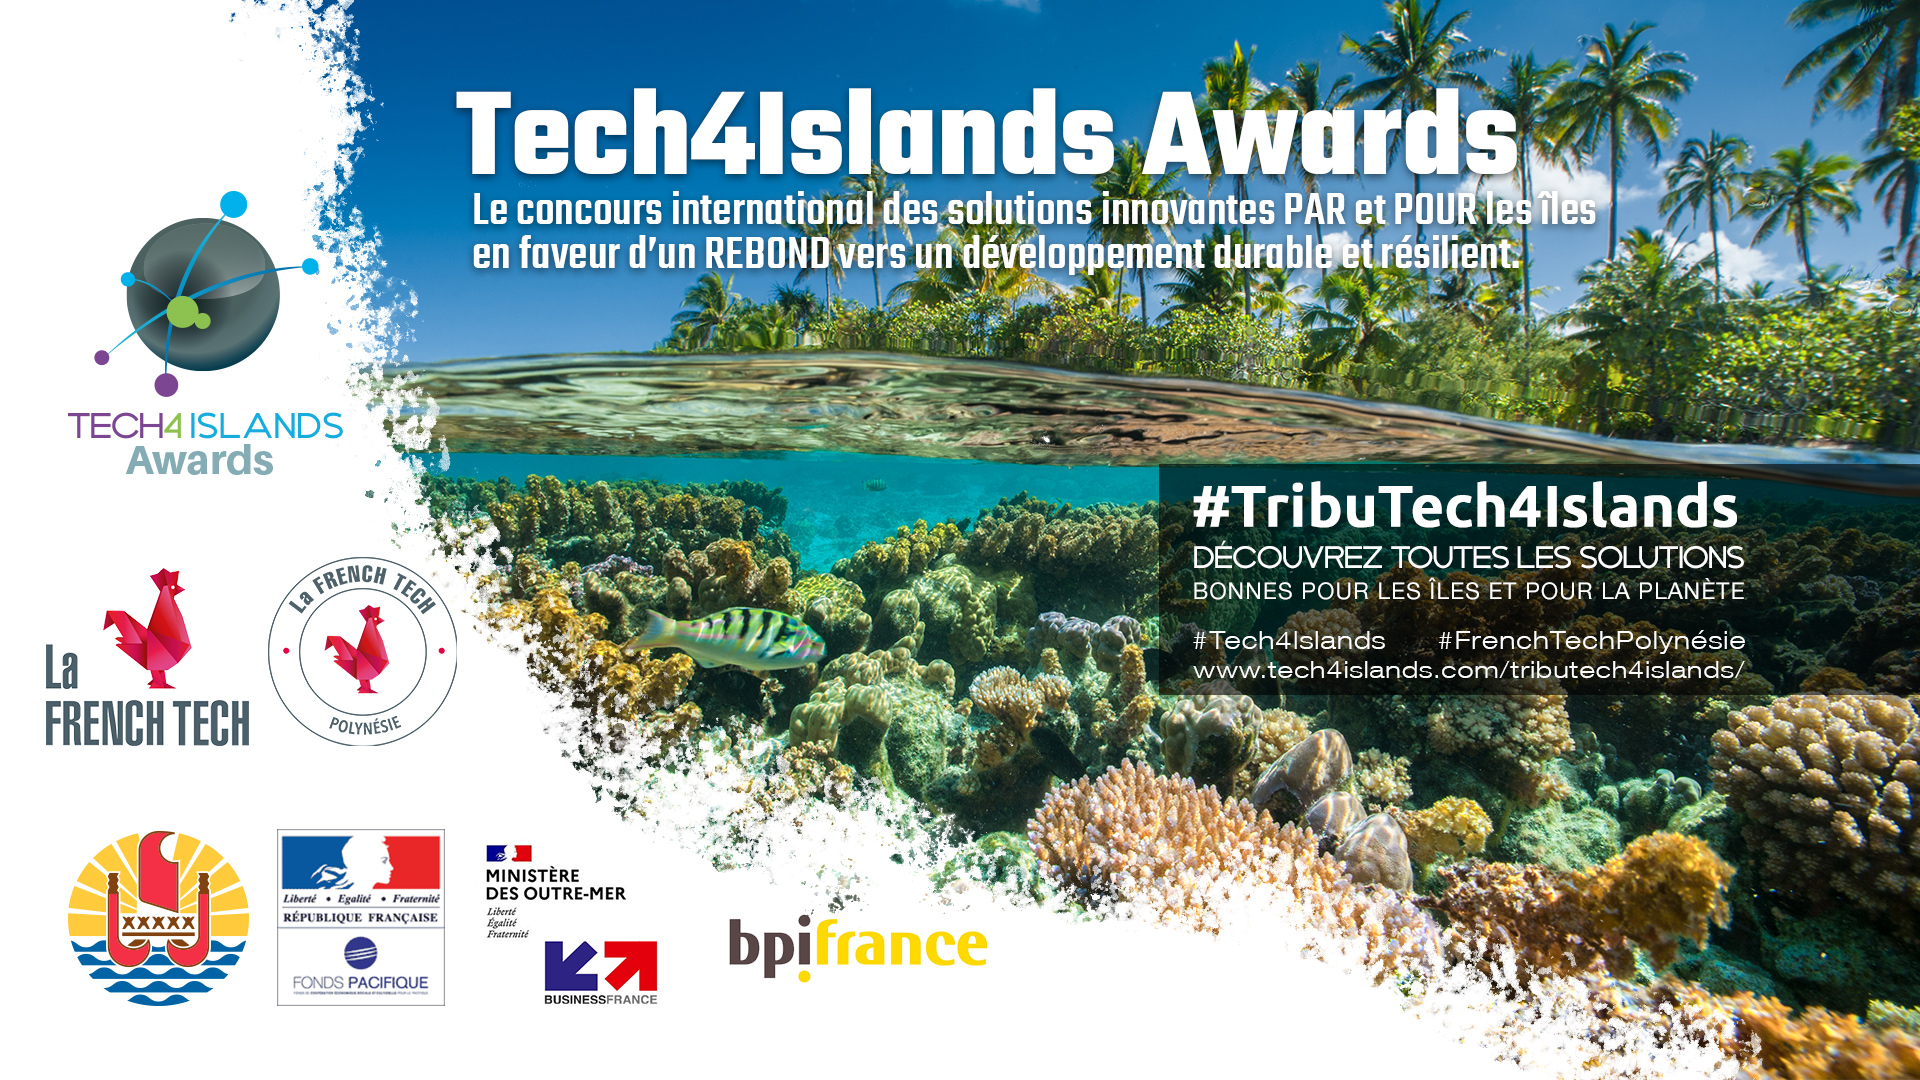 Tech4Islands-Awards-TribuTech4Islands-16-9-HD